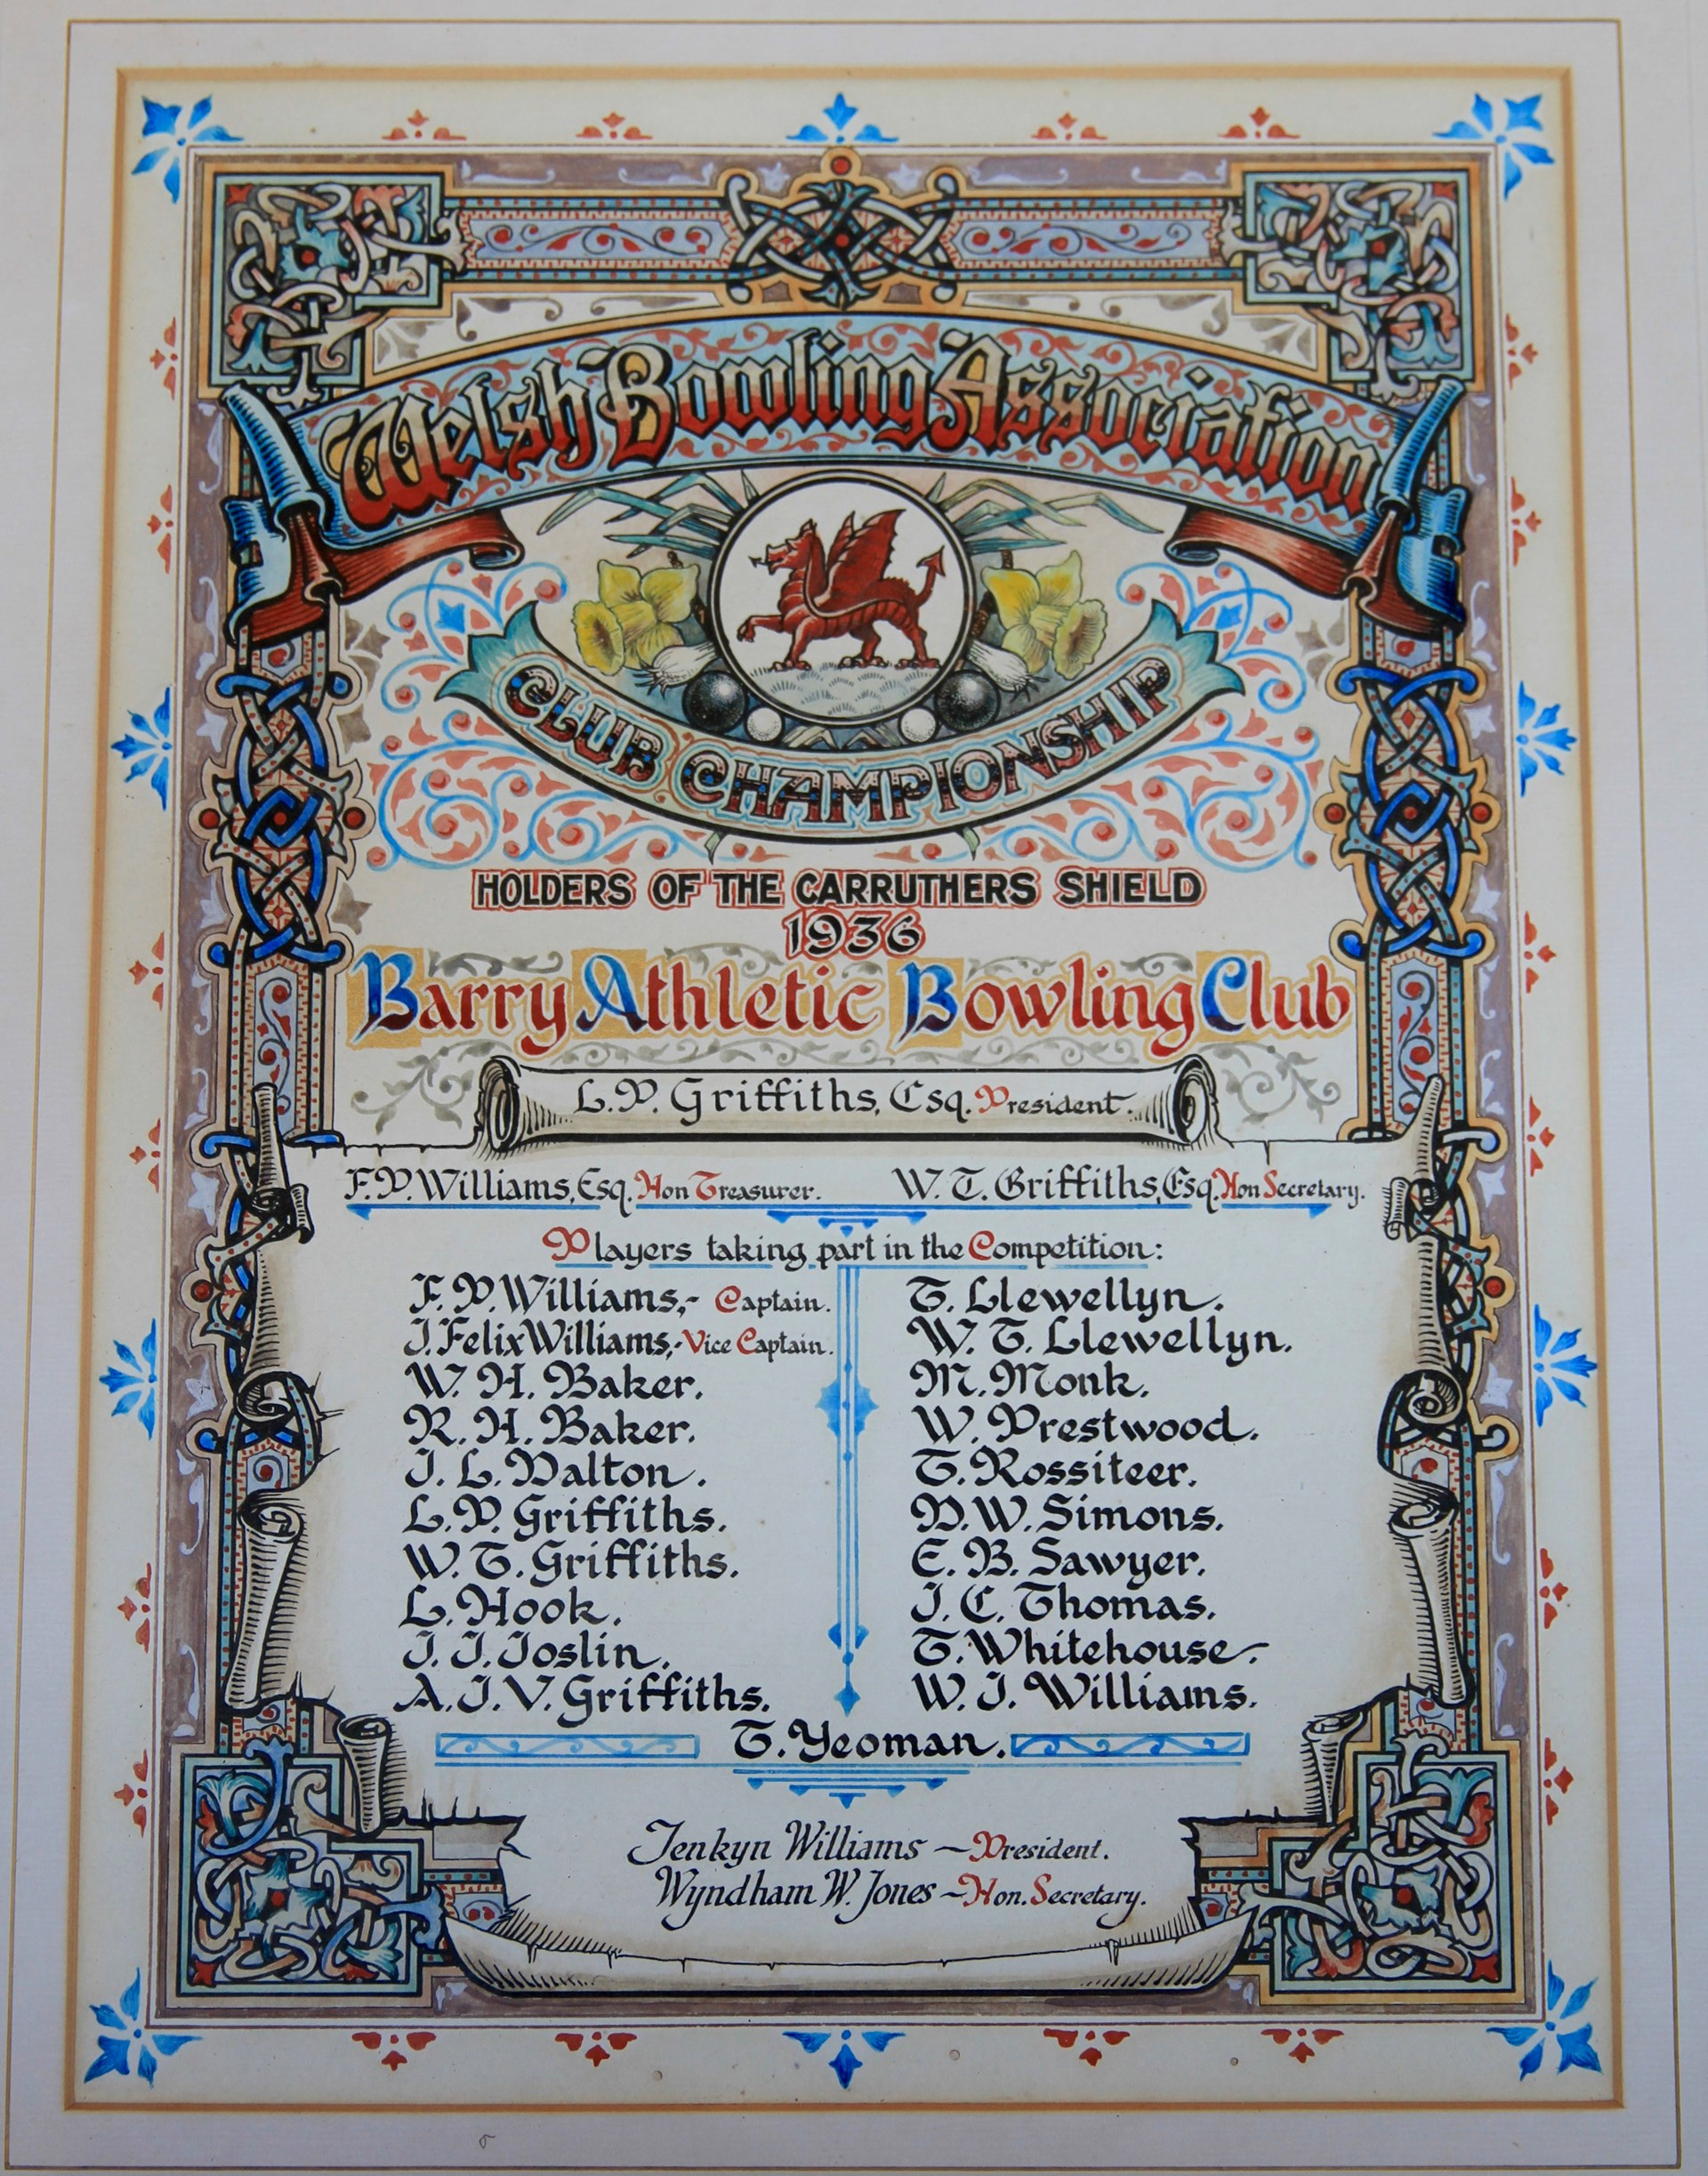 Carruthers Shield Winners 1936